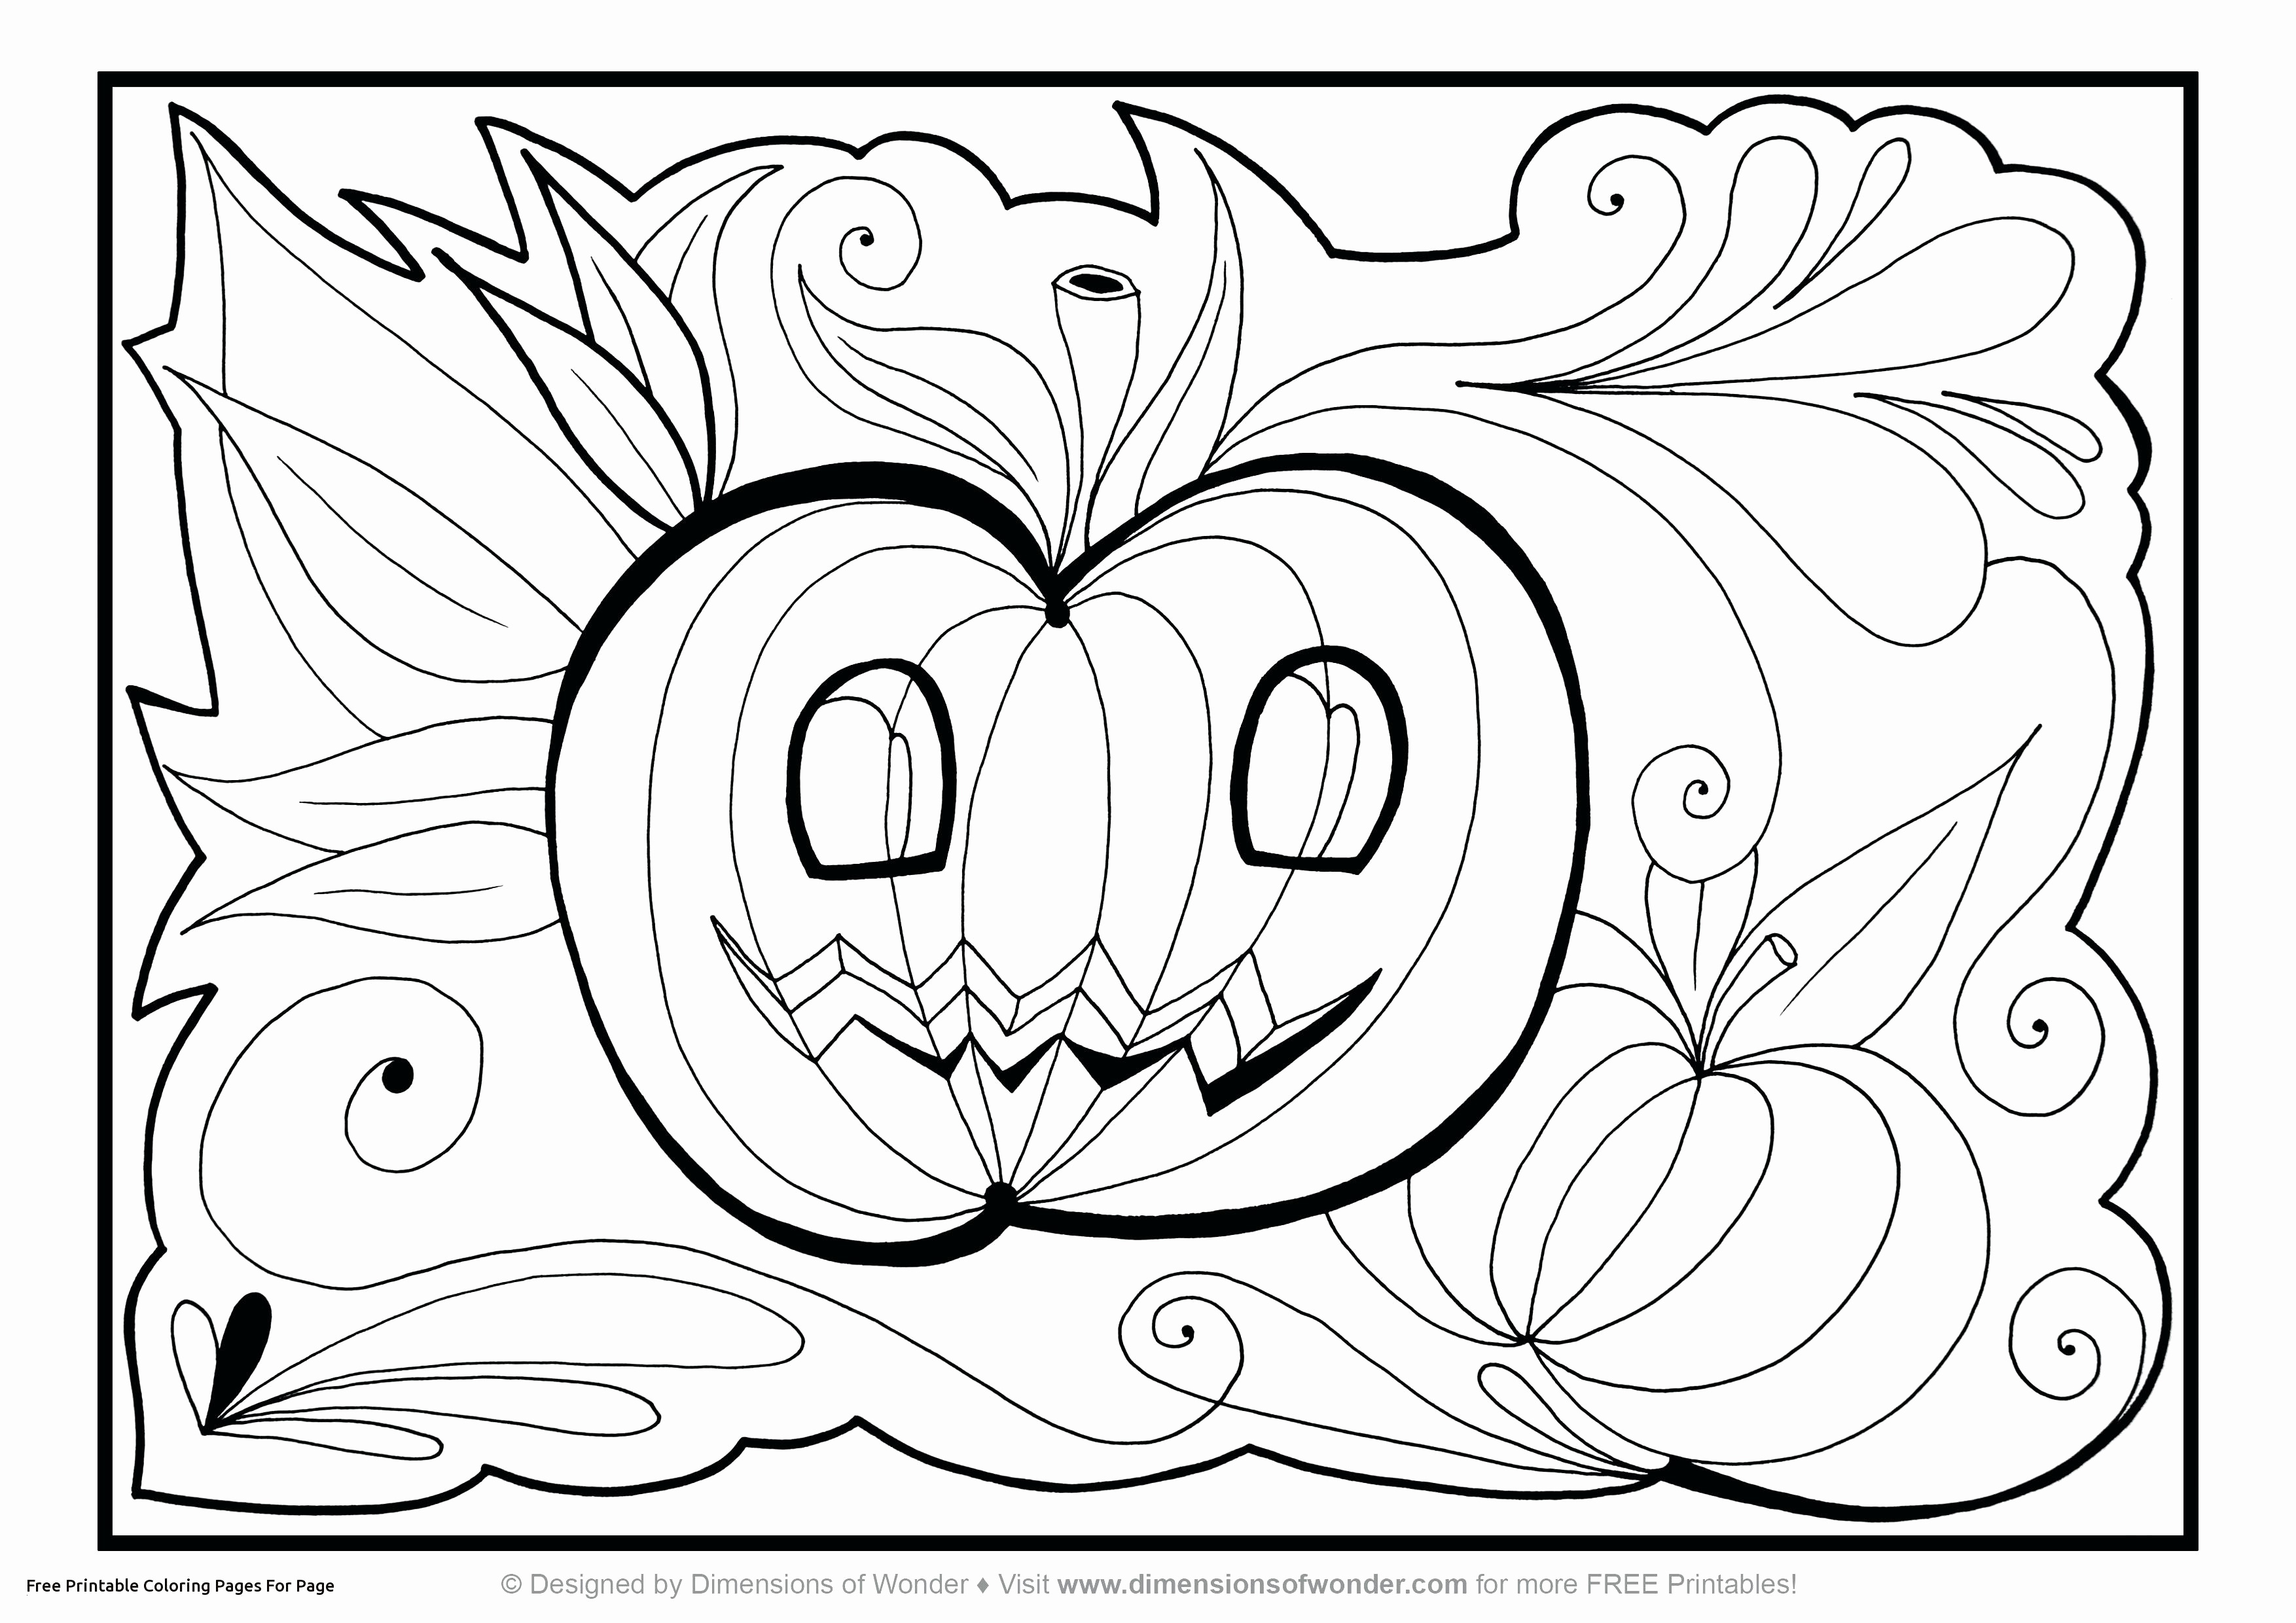 30 Printable Halloween Coloring Pages To Print Collection